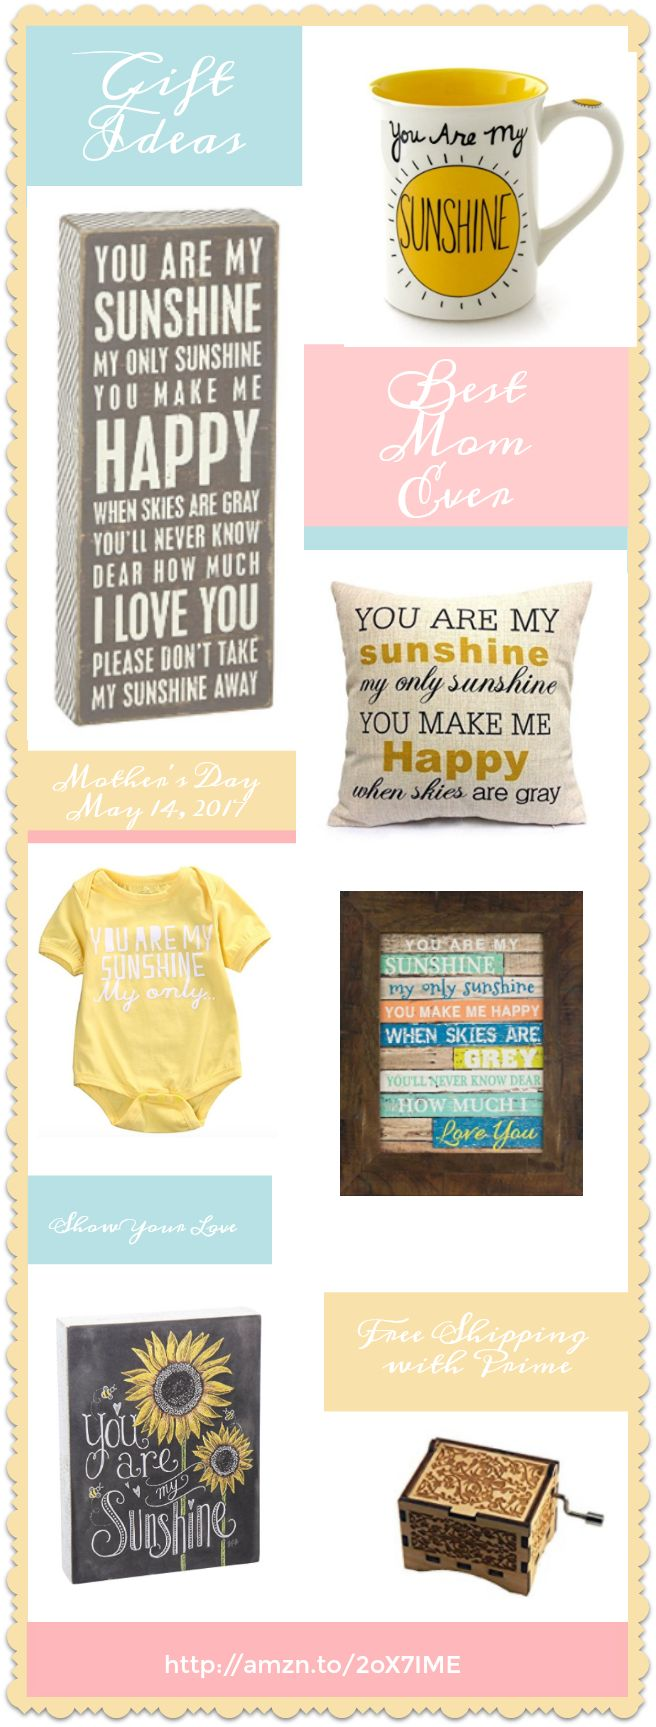 Does Mom make you happy when skies are gray? Mother's Day Gifts - You are My Sunshine http://amzn.to/2oX7IME - Lots of ideas and free shipping with prime ;)